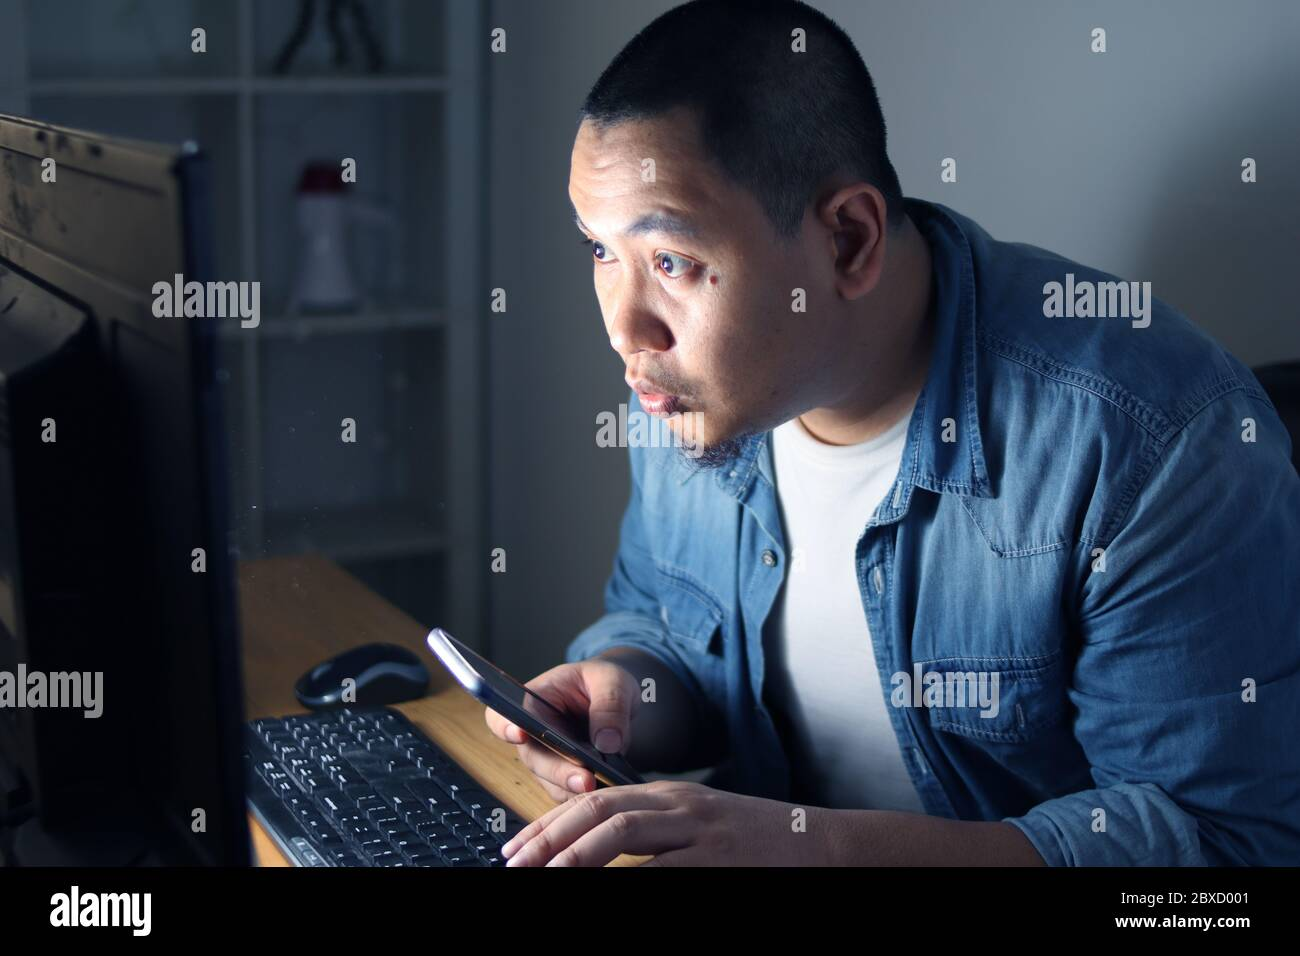 Young Asian man using smart phone and computer until late night, he is working or studying hard to reach his ambition. Student or businessman works ha Stock Photo